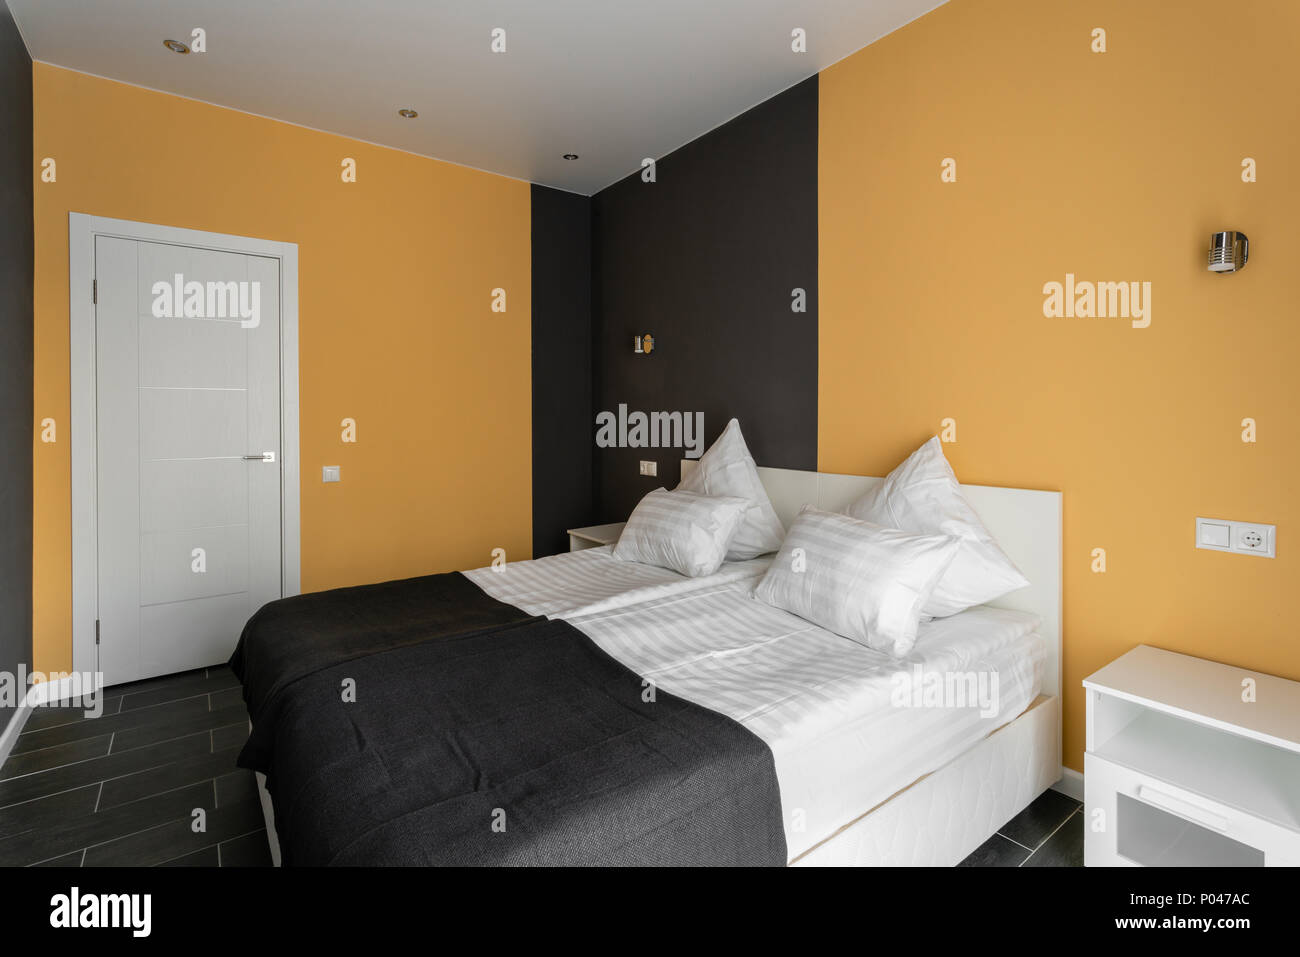 Daylight Morning Hotel Standart Room Modern Bedroom With White Pillows Simple And Stylish Interior Stock Photo Alamy